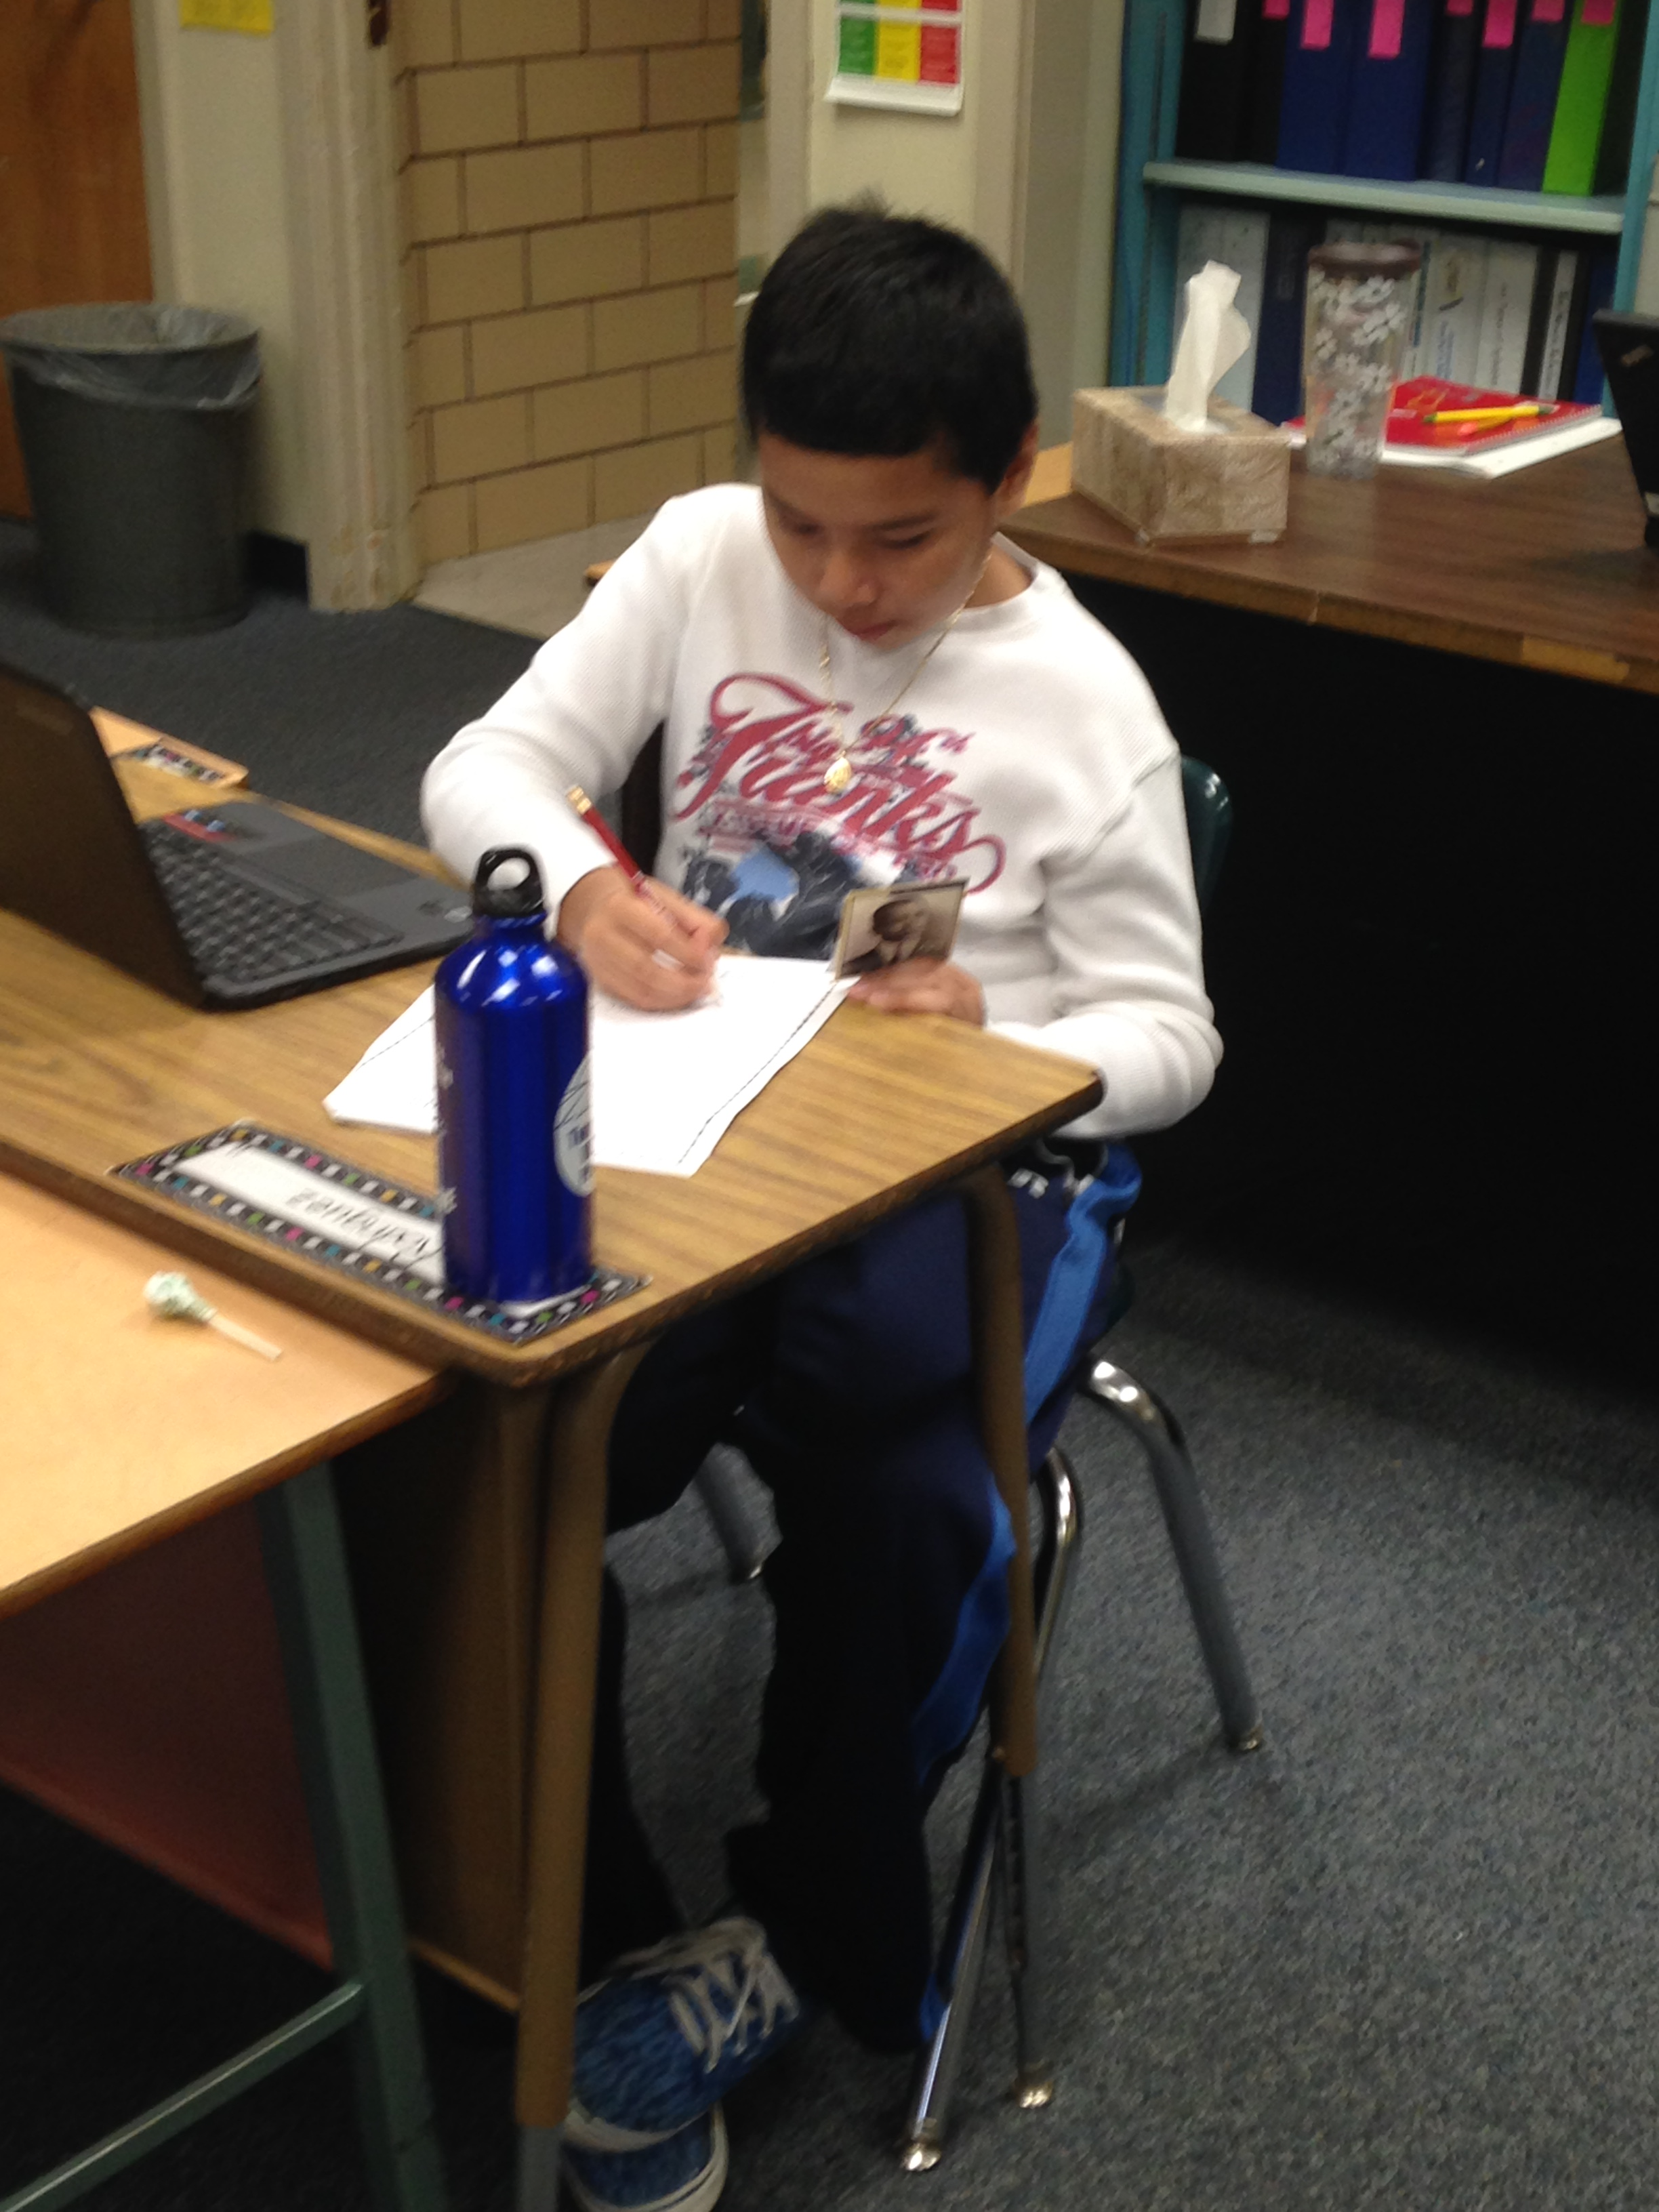 Fourth grader working on his Famous Kansan project